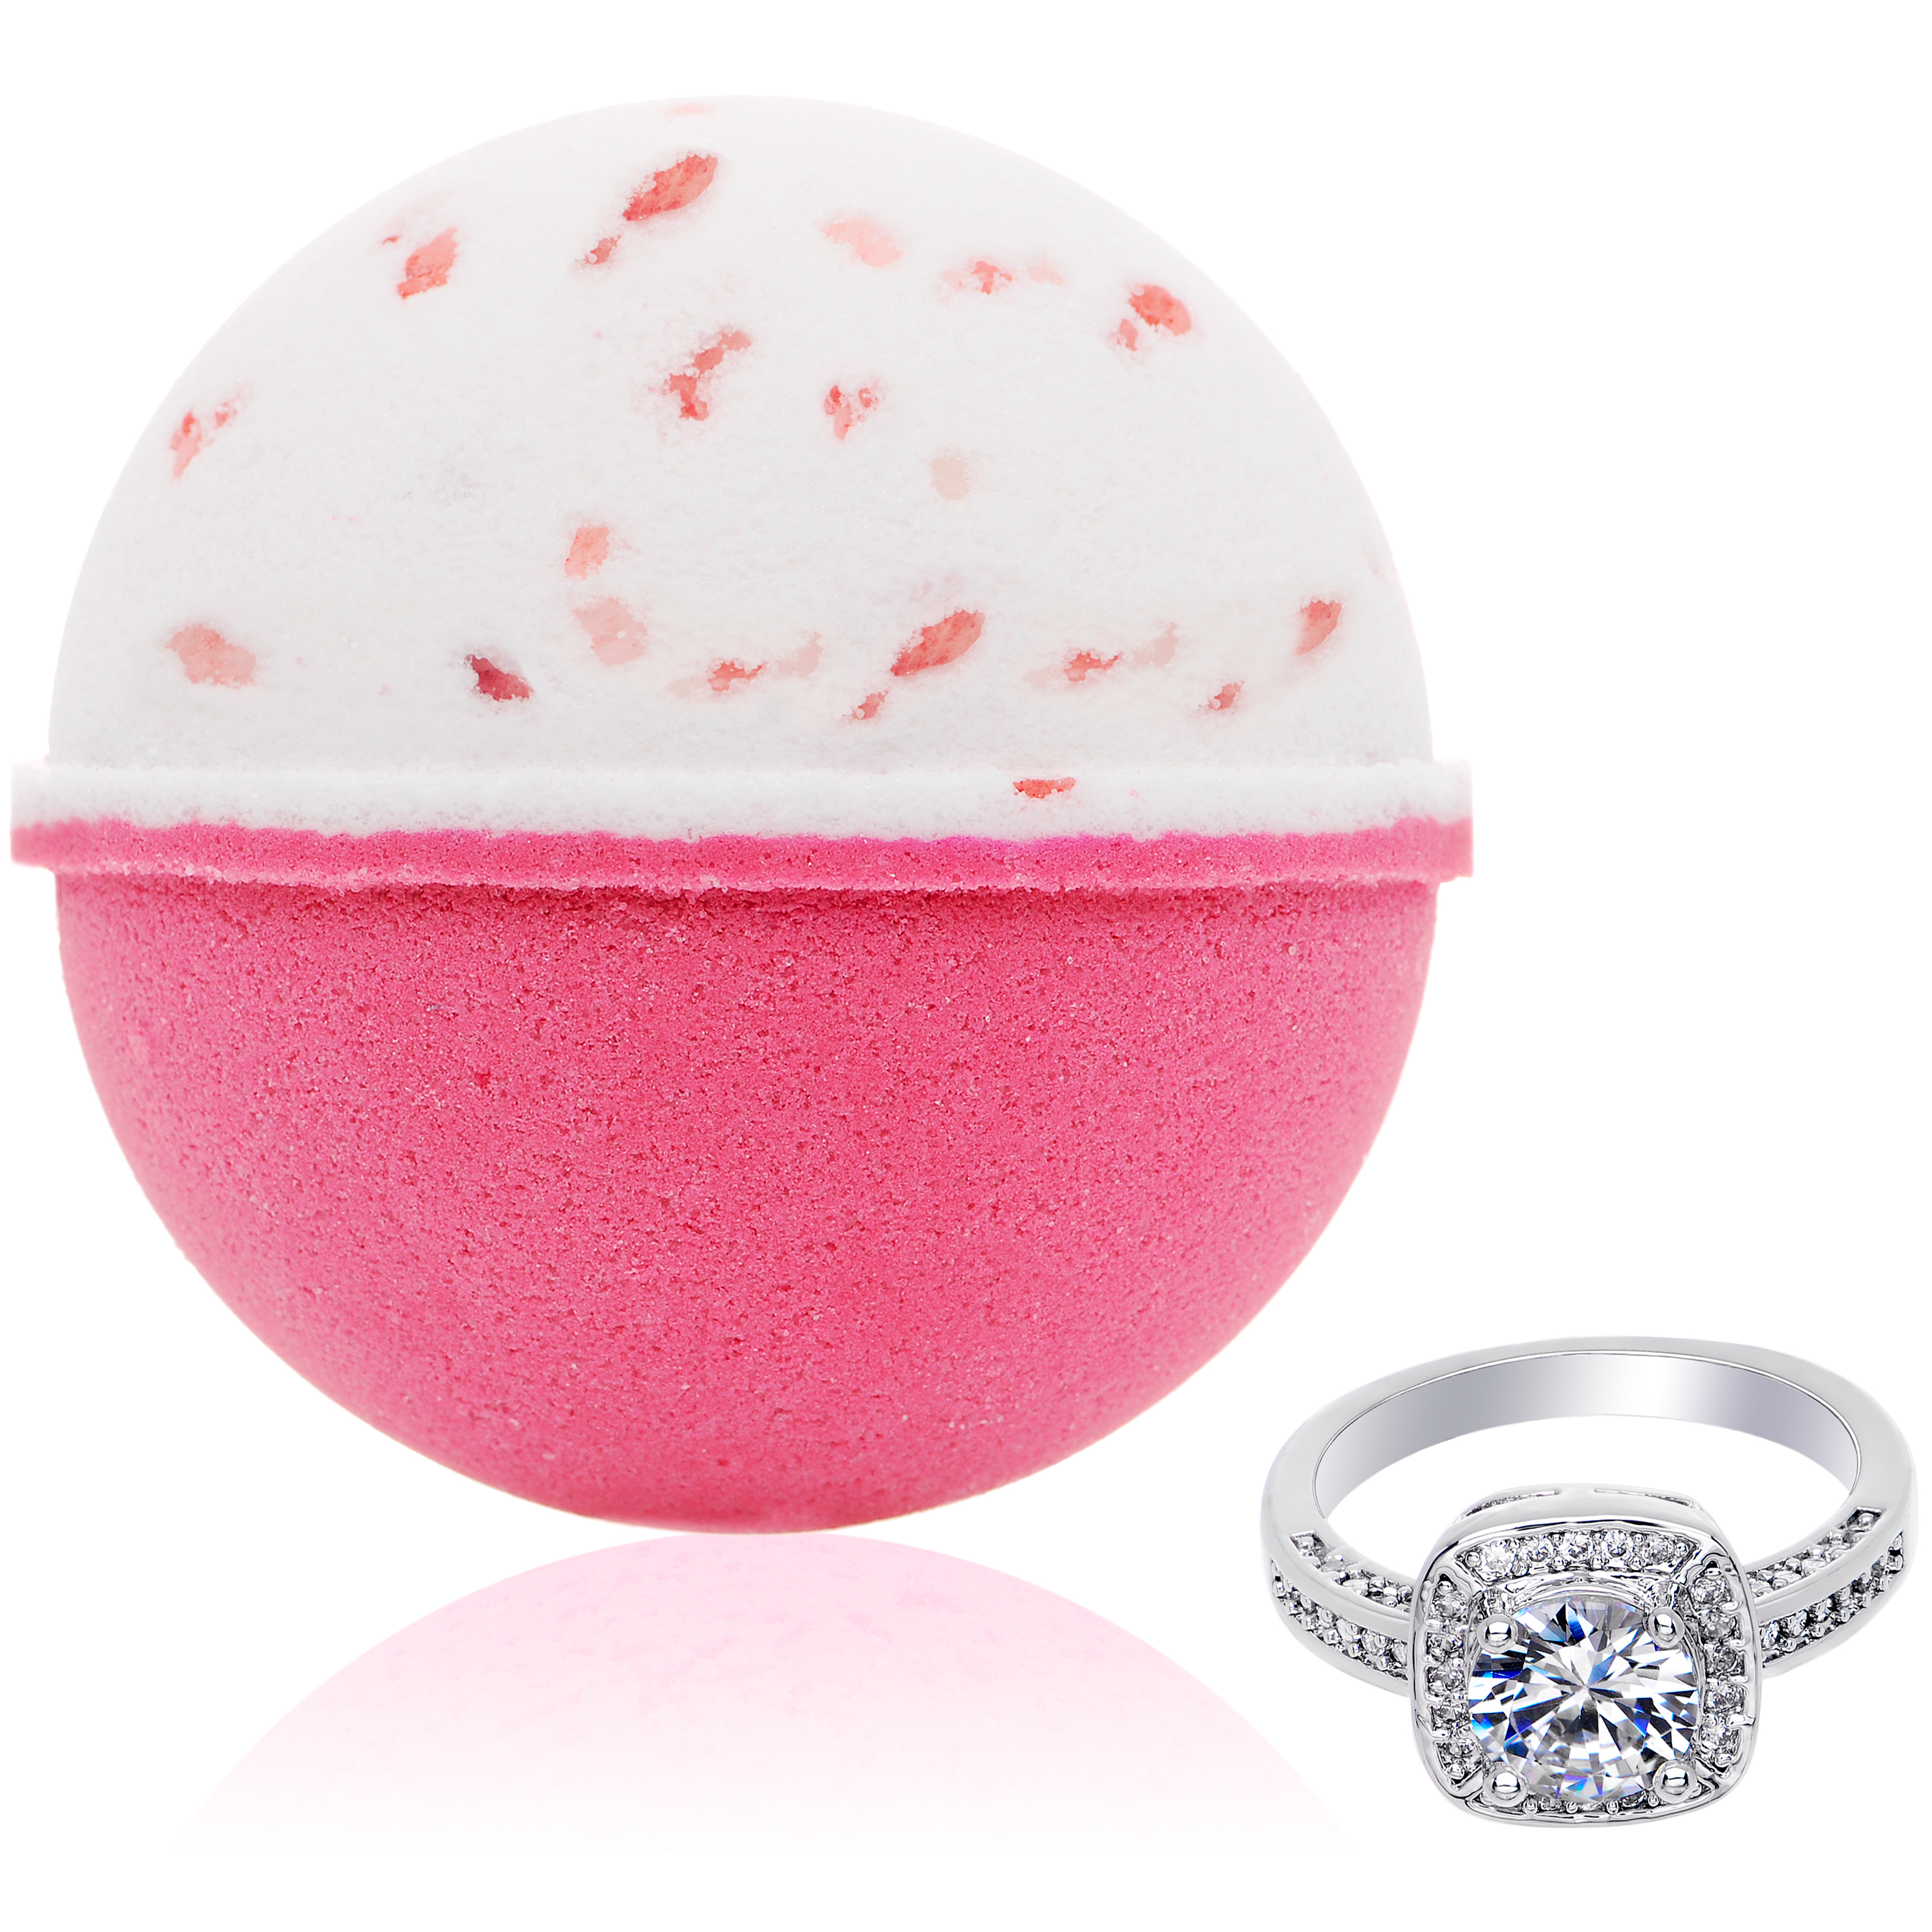 Bath Bomb with Size 7 Ring Inside Pink Himalayan Sea Salt Extra Large 10 oz. Made in USA